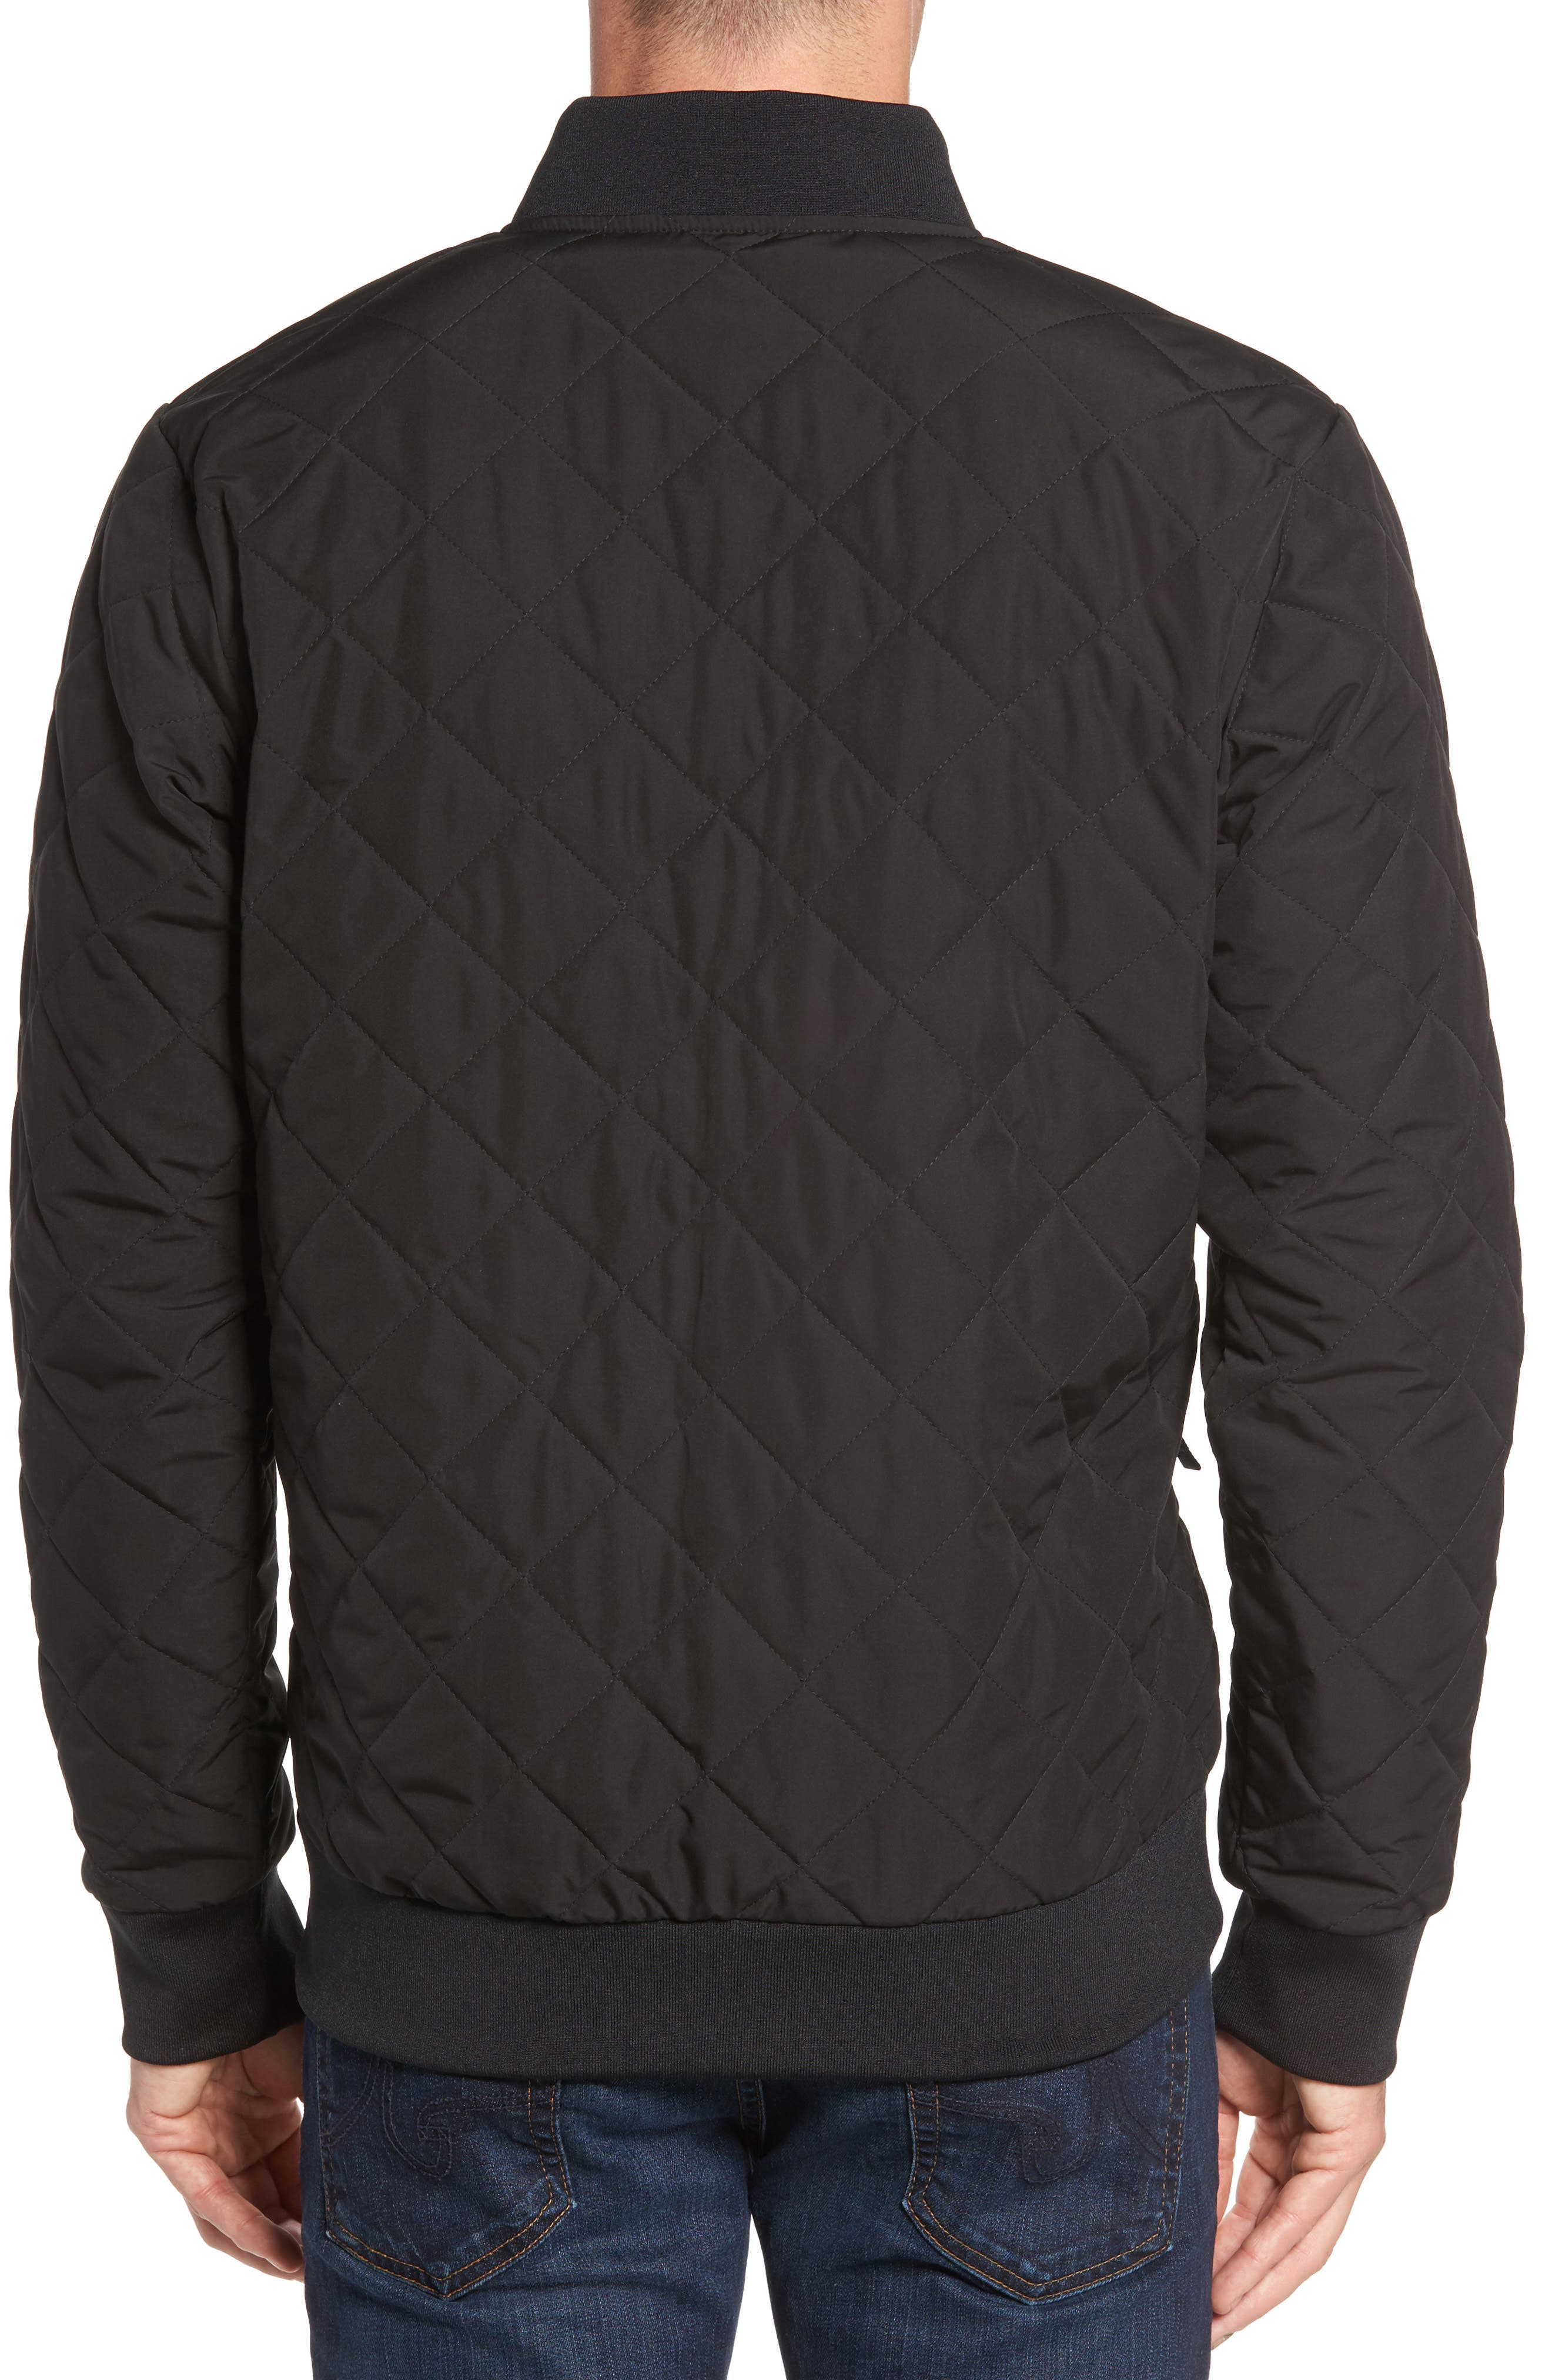 Distributor Quilted Bomber Jacket,                             Alternate thumbnail 2, color,                             001